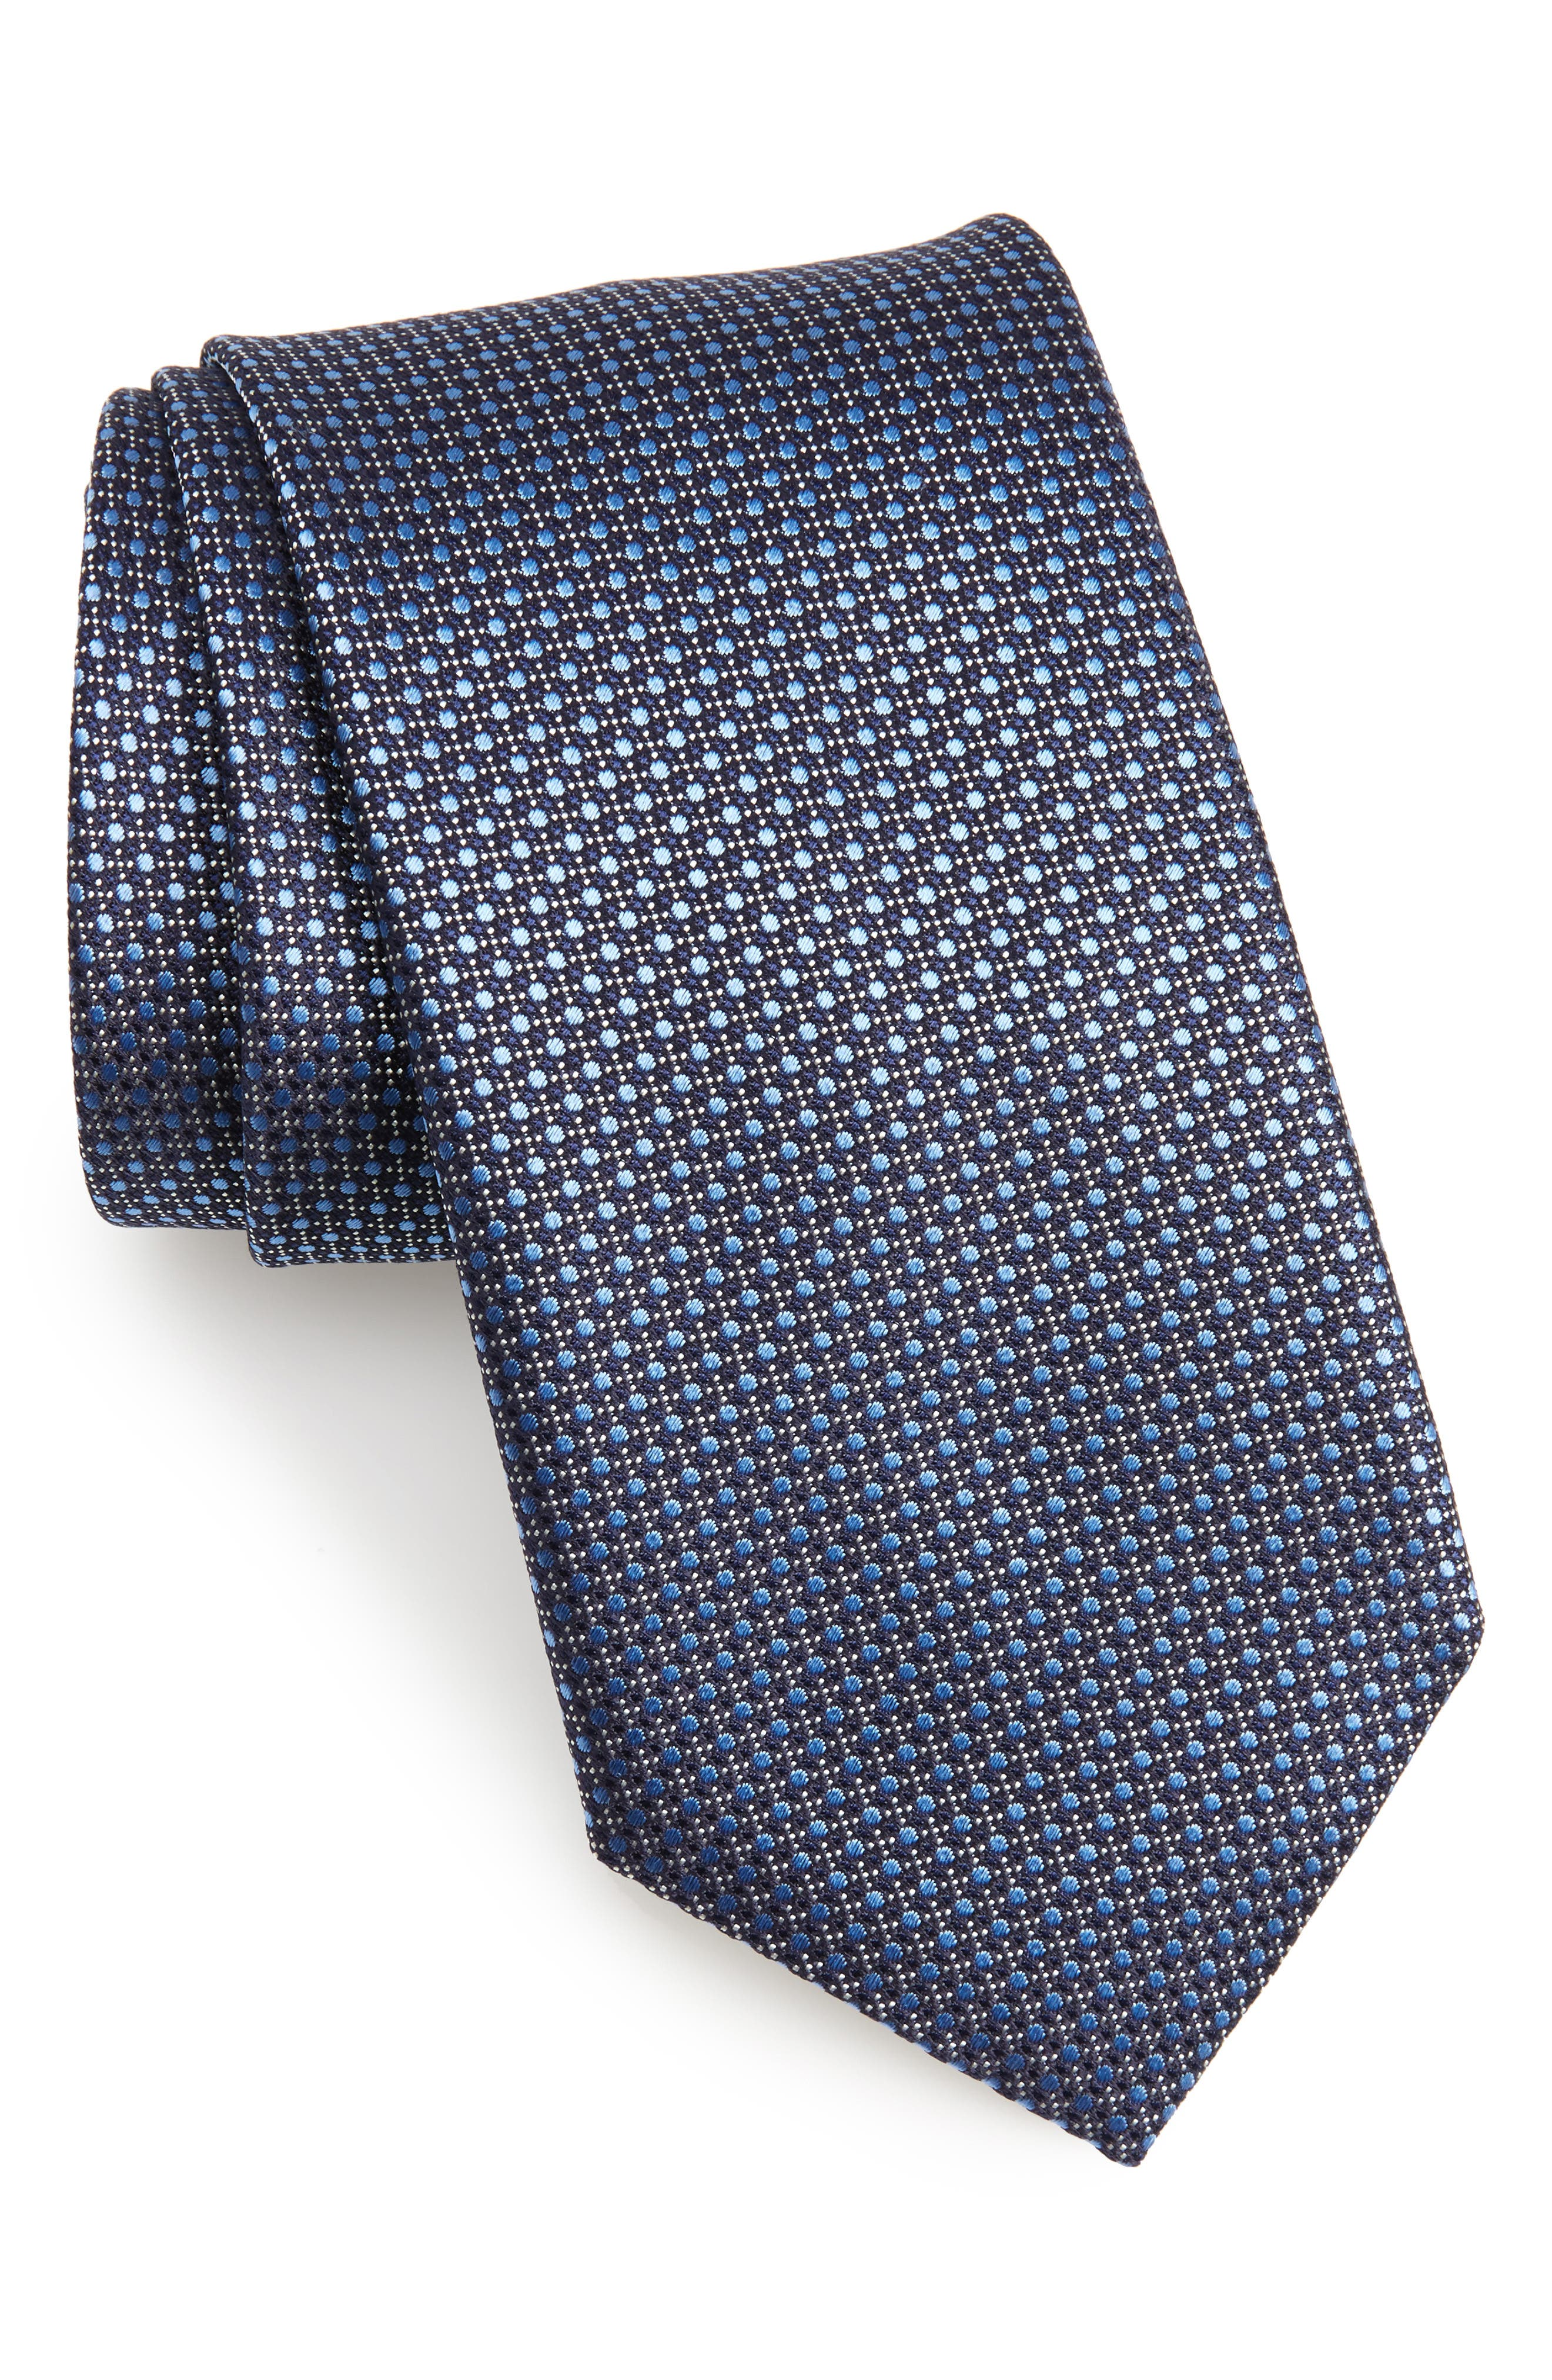 Neat Silk Tie,                             Main thumbnail 1, color,                             410